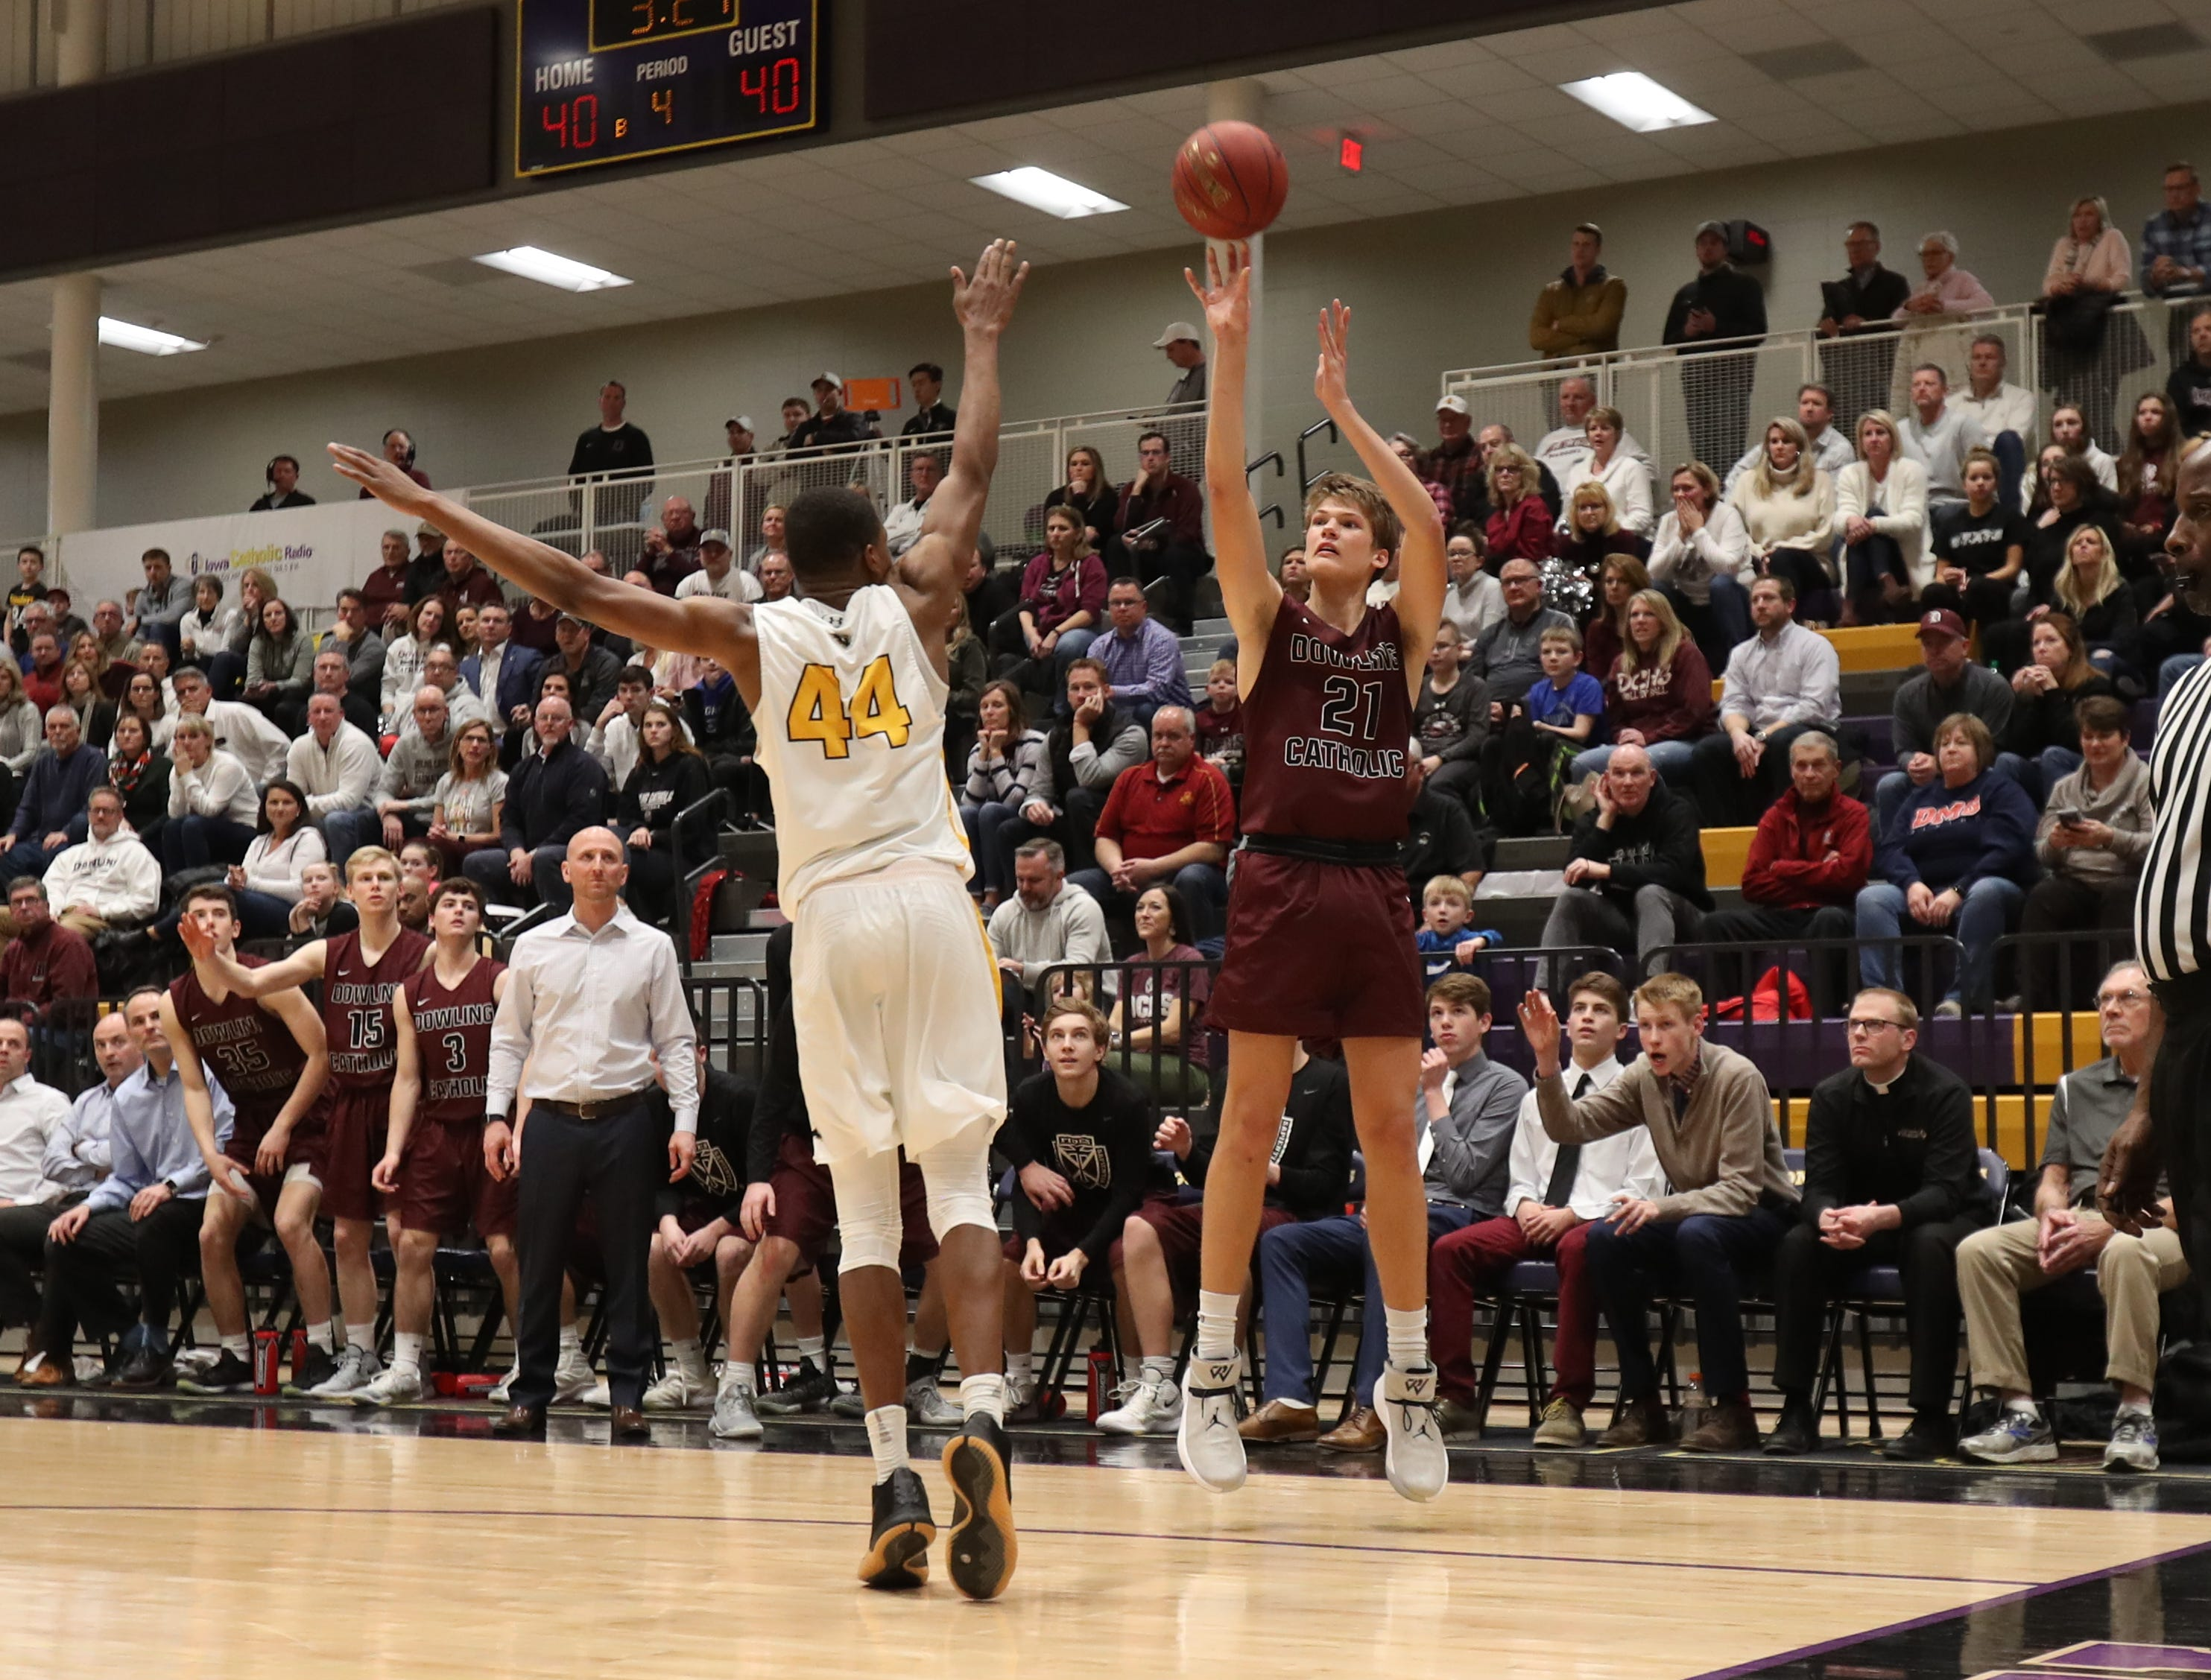 Dowling Catholic's Ryan Riggs (21) shoots over Southeast Polk's Malichai Williams (44) during their game at Johnston High School in Johnston, Iowa, on Tuesday, Feb. 26, 2019. Dowling won the game 44-40 to advance to state.